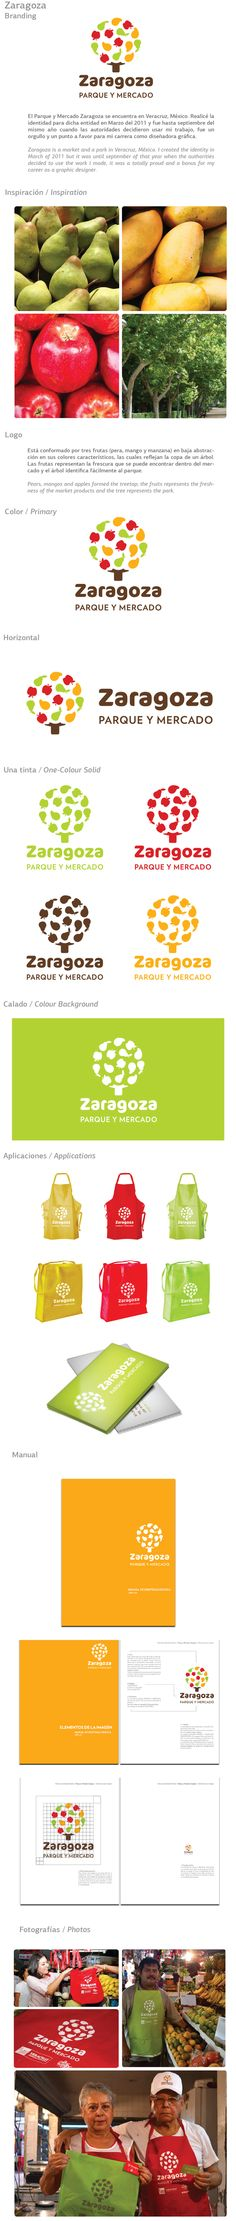 Zaragoza on the Behance Network. Great #packaging #branding #marketing PD